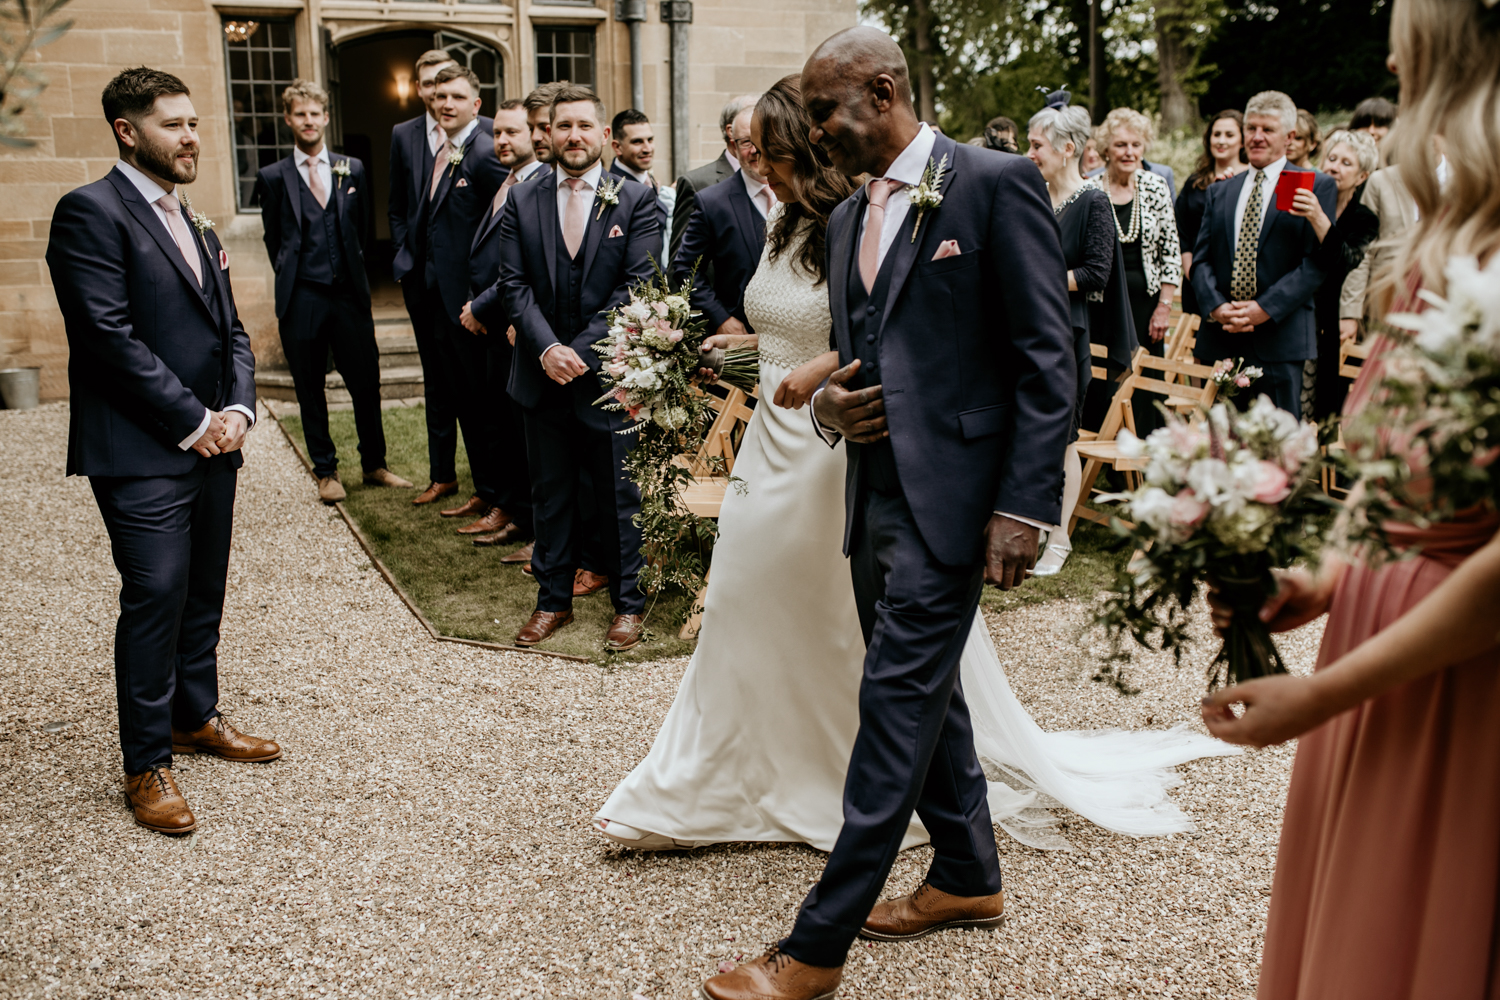 dad and bride walking down the aisle to meet the groom at Coombe Lodge Blagdon wedding venue